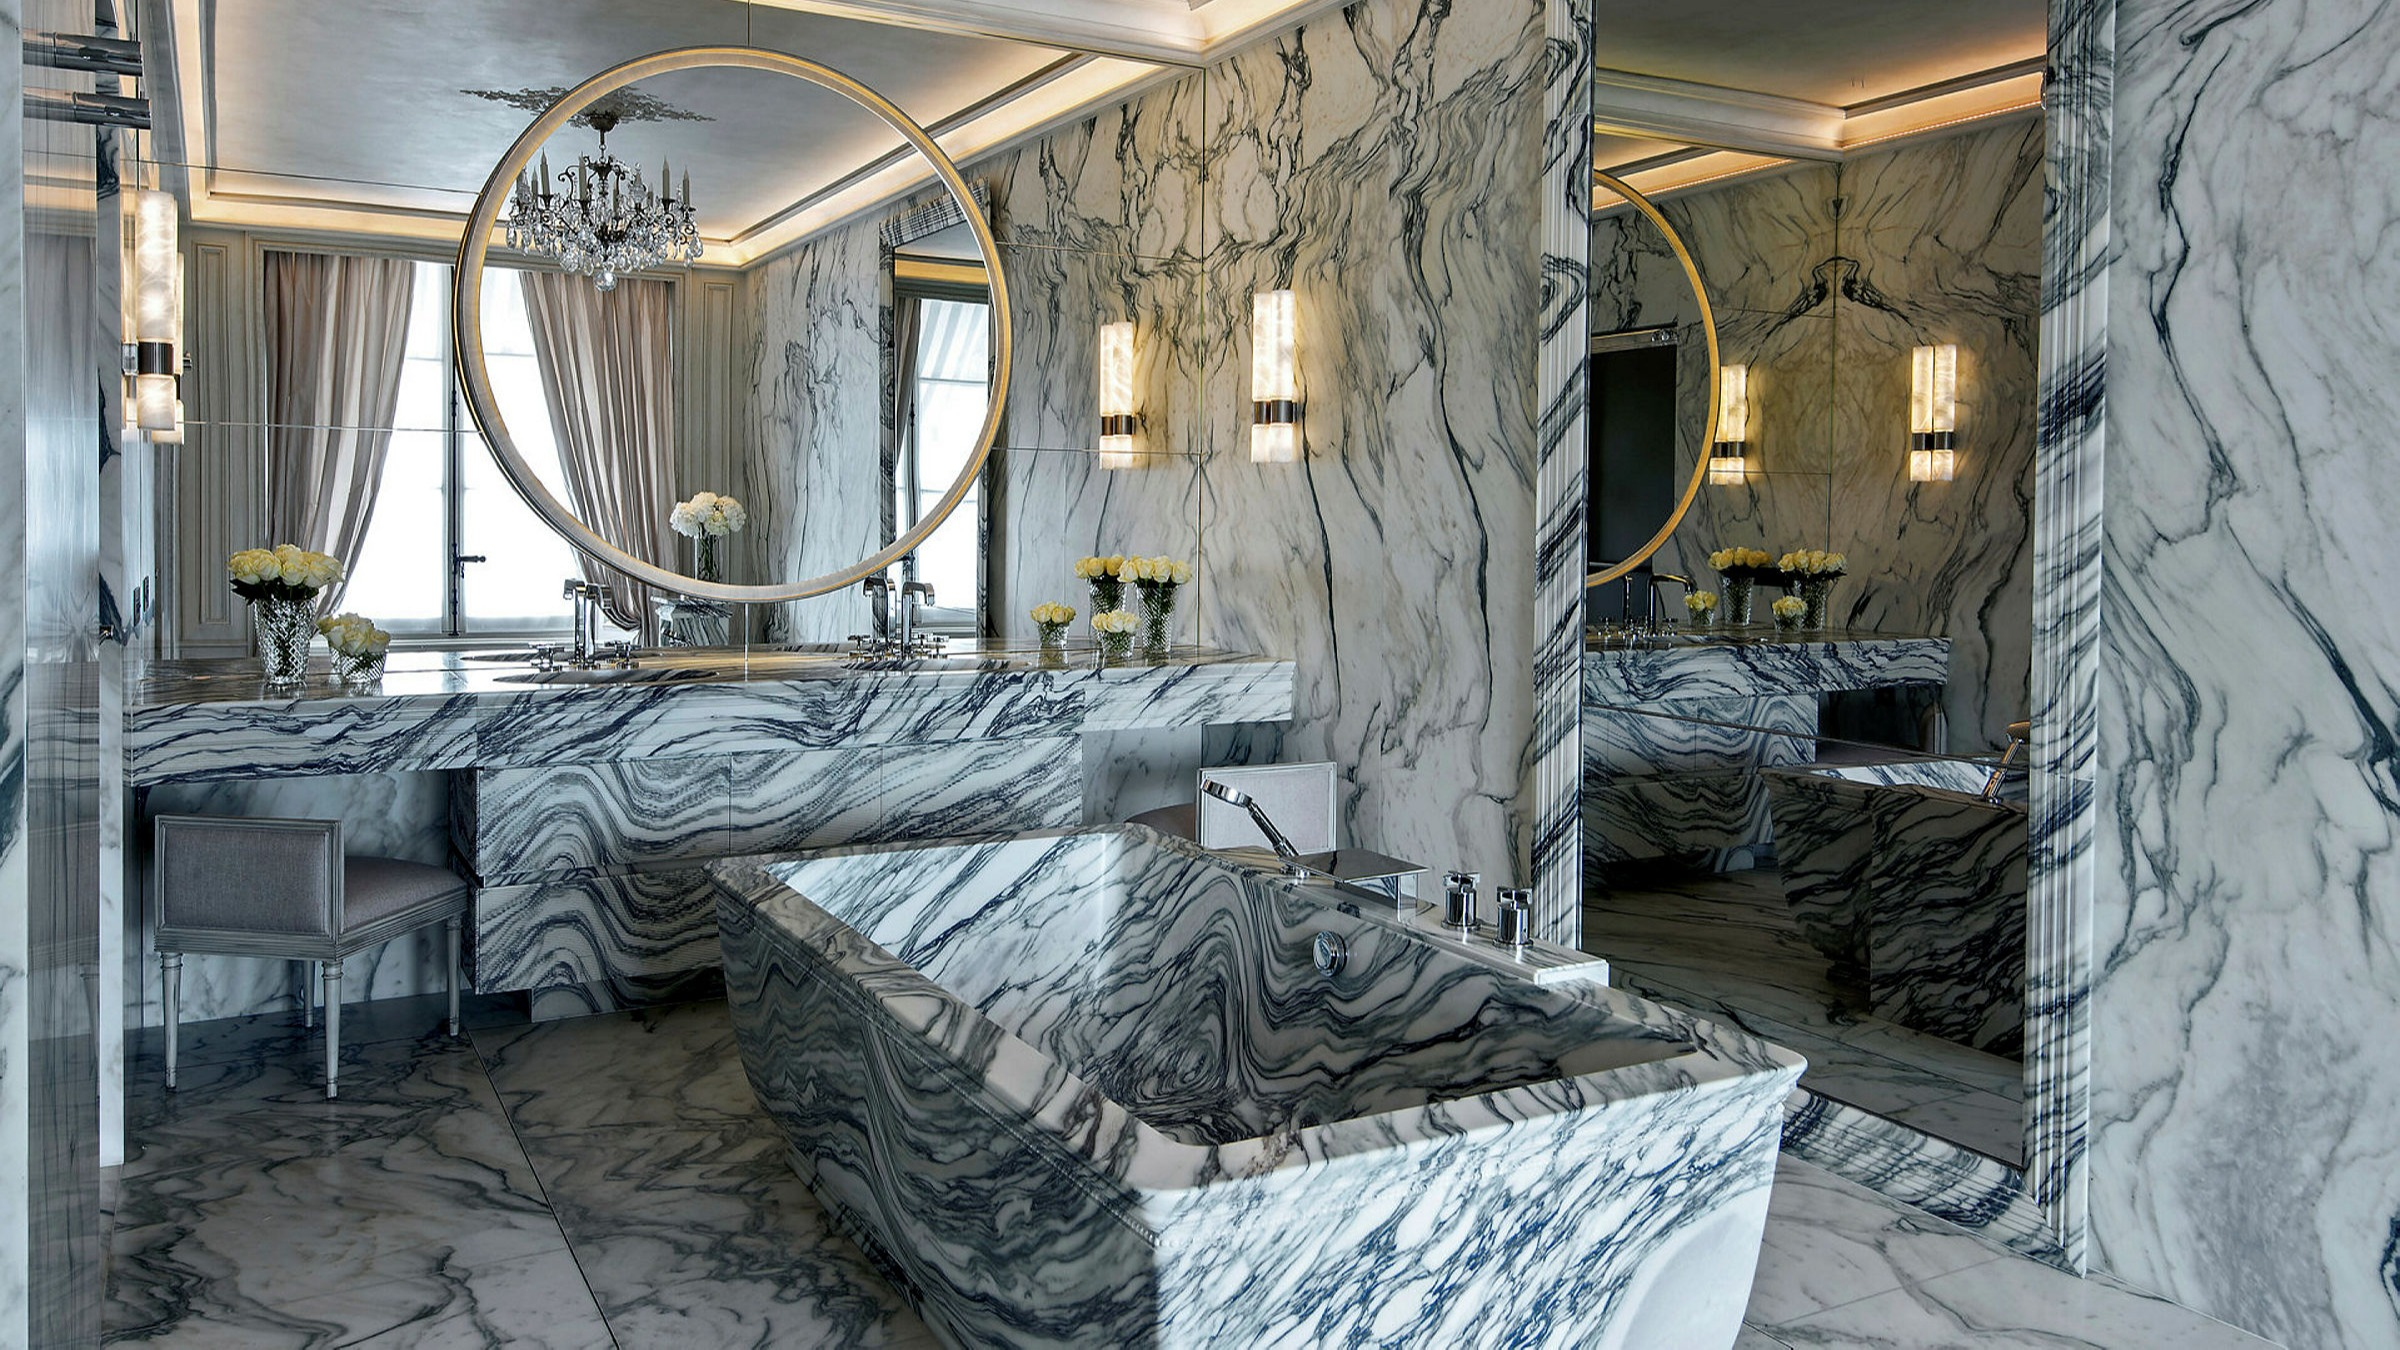 The Morality Of Marble Interior Design S Crisis Of Conscience Financial Times